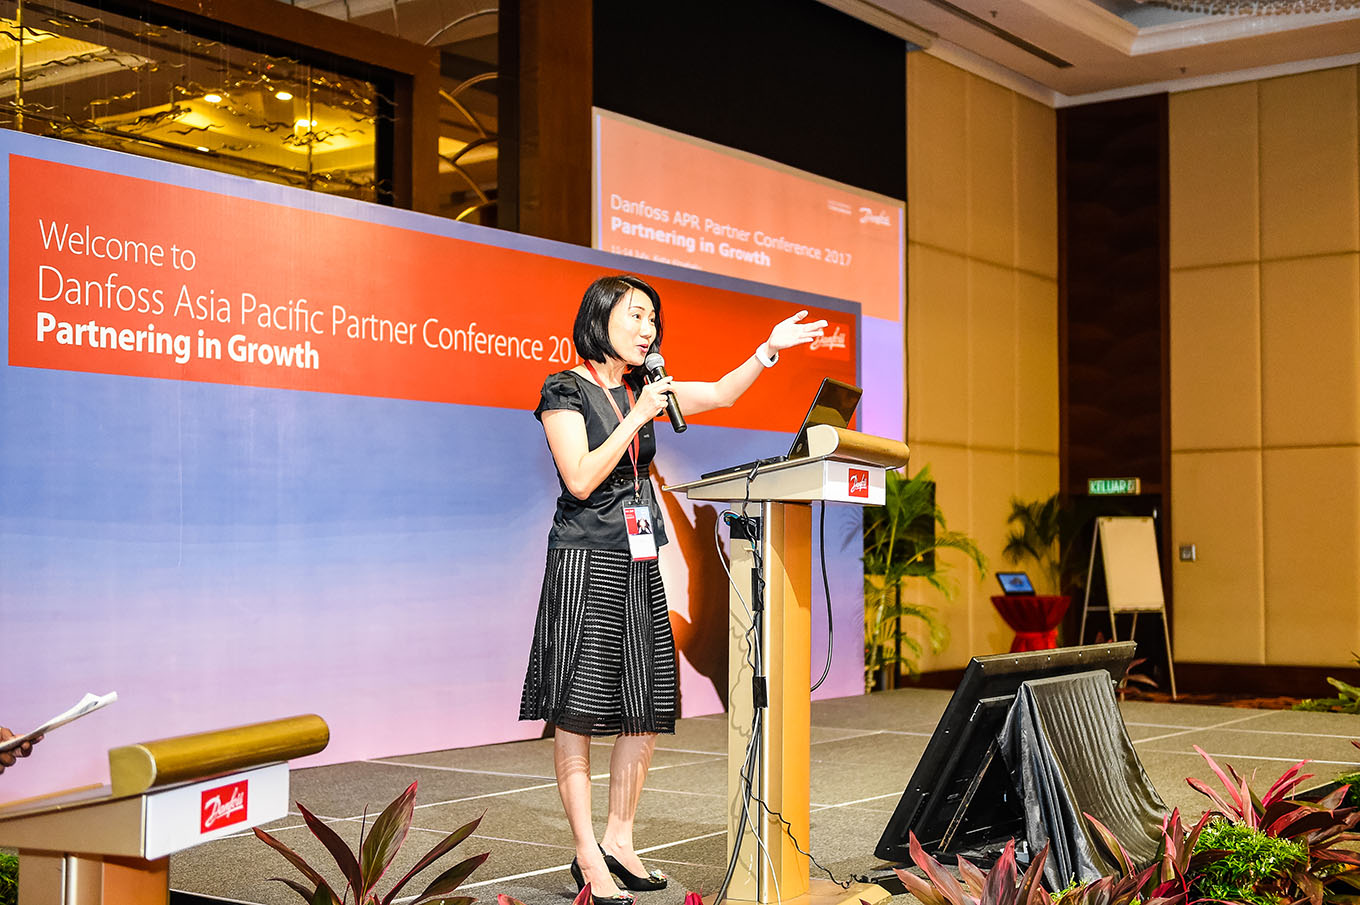 Define International - Danfoss Asia Pacific Partner Conference 2017